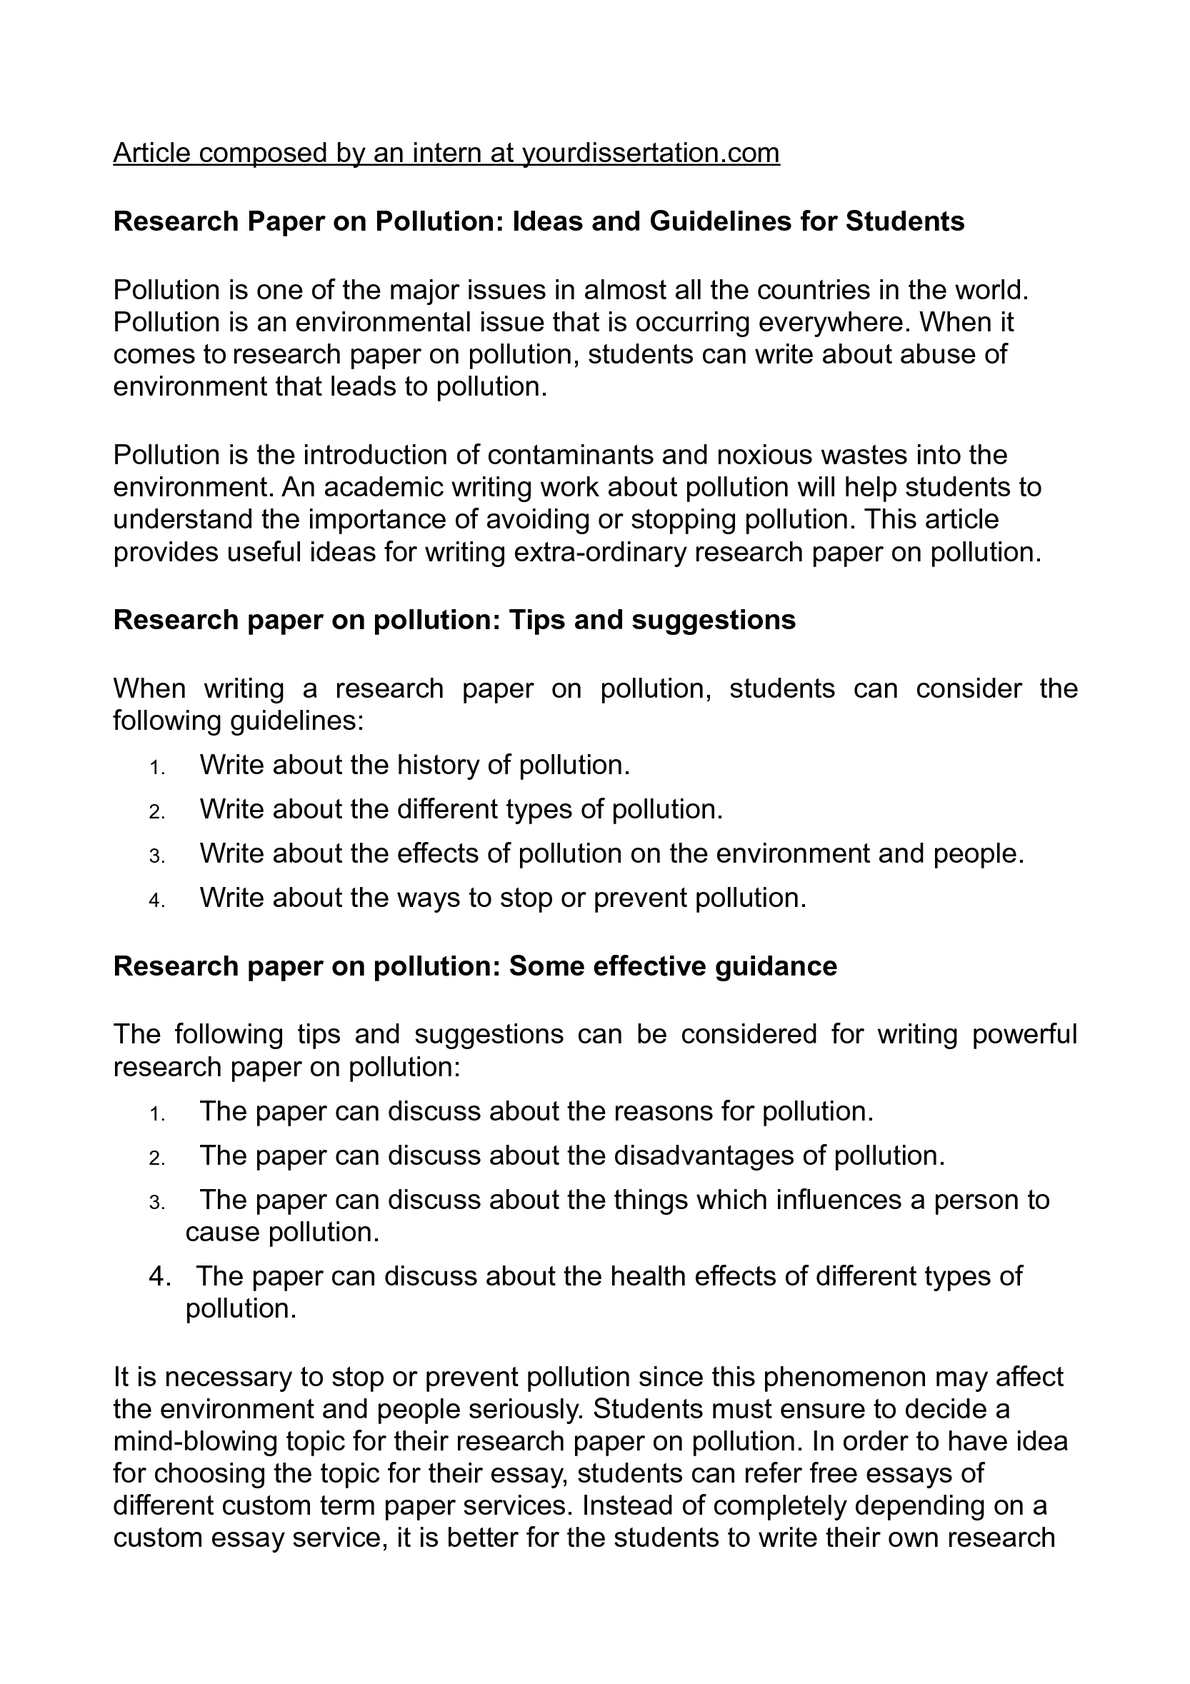 how to prevent pollution essay essay abstract example research  calam eacute o research paper on pollution ideas and guidelines for calameacuteo research paper on pollution